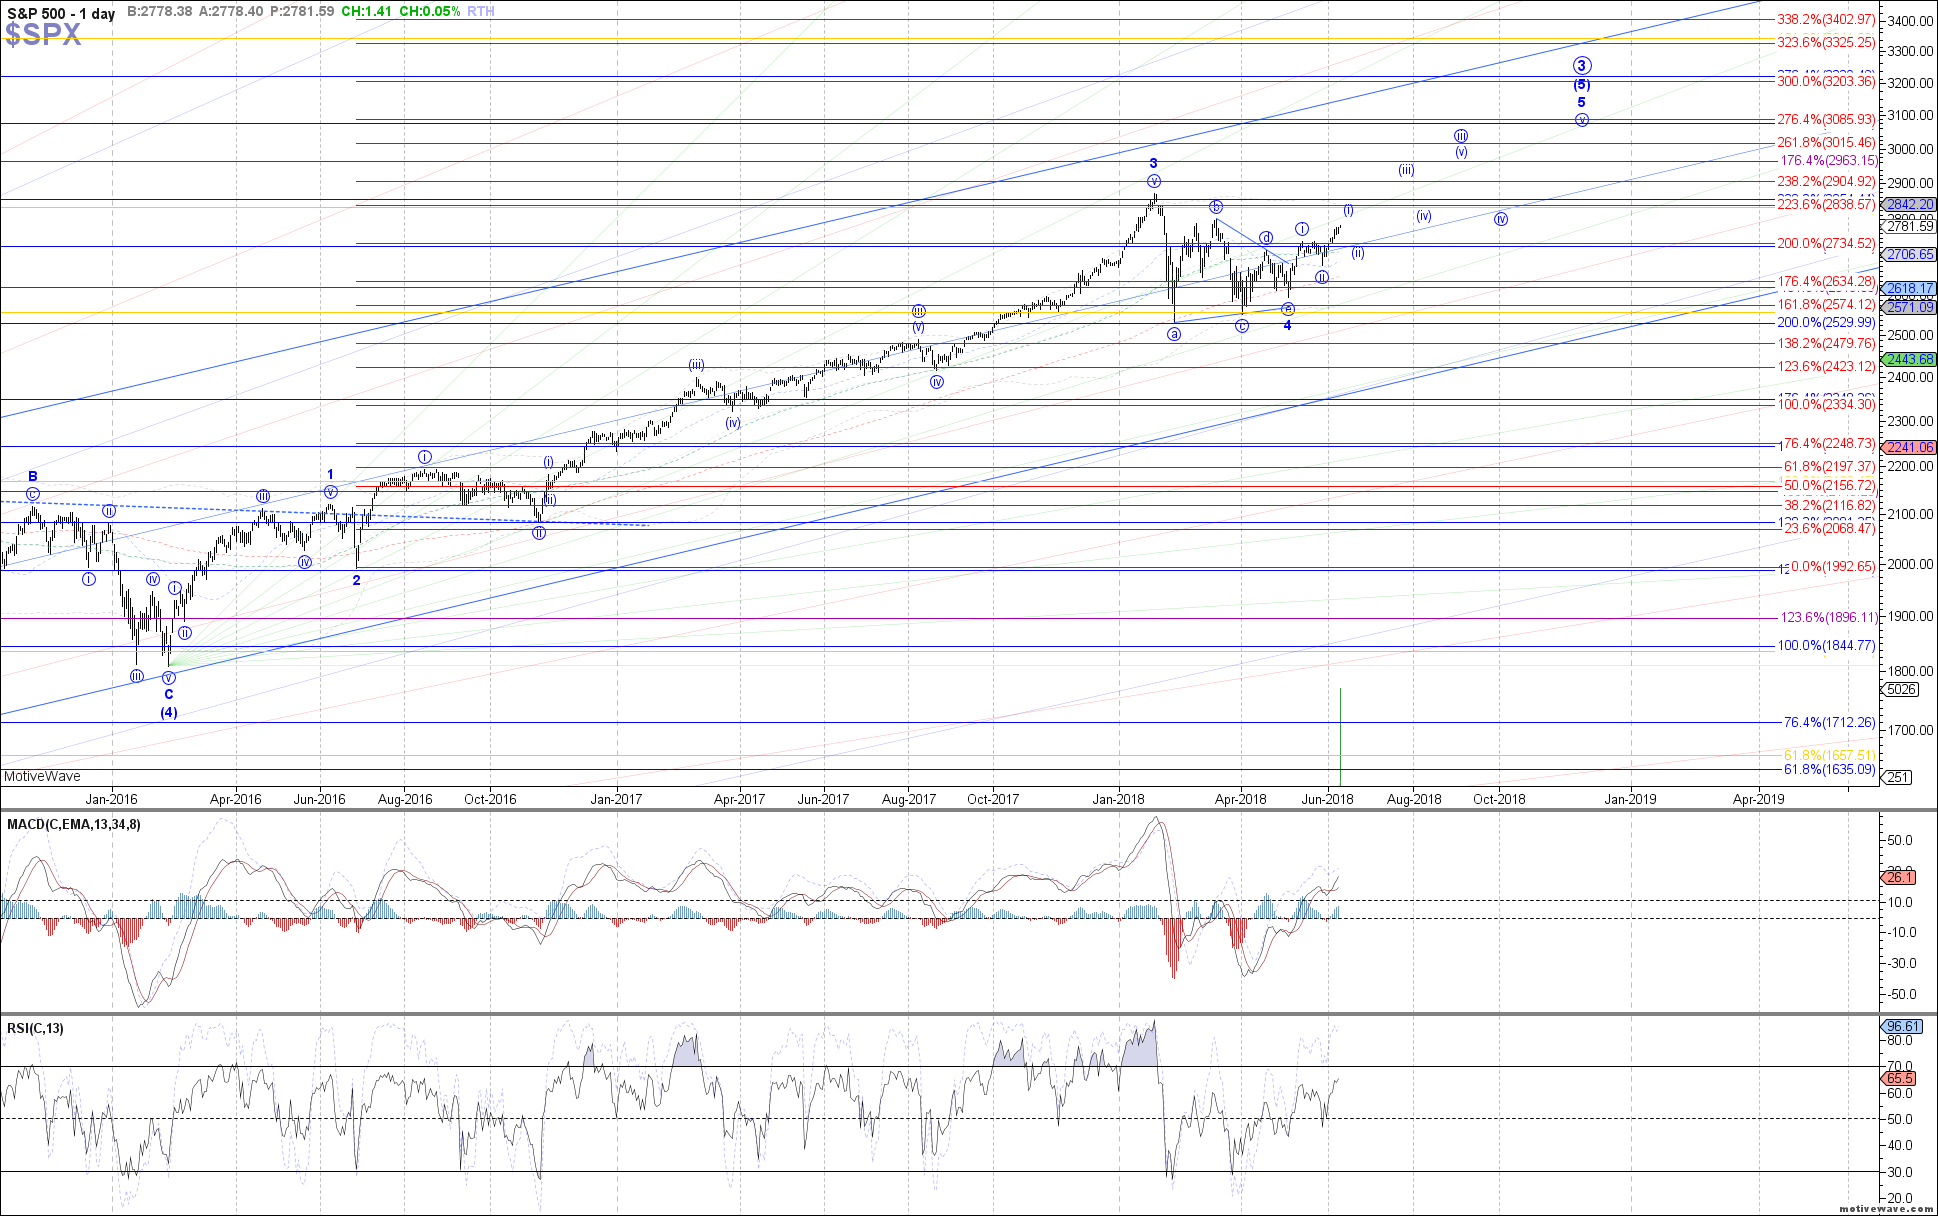 $SPX - Primary Analysis - Jun-11 0808 AM (1 day)